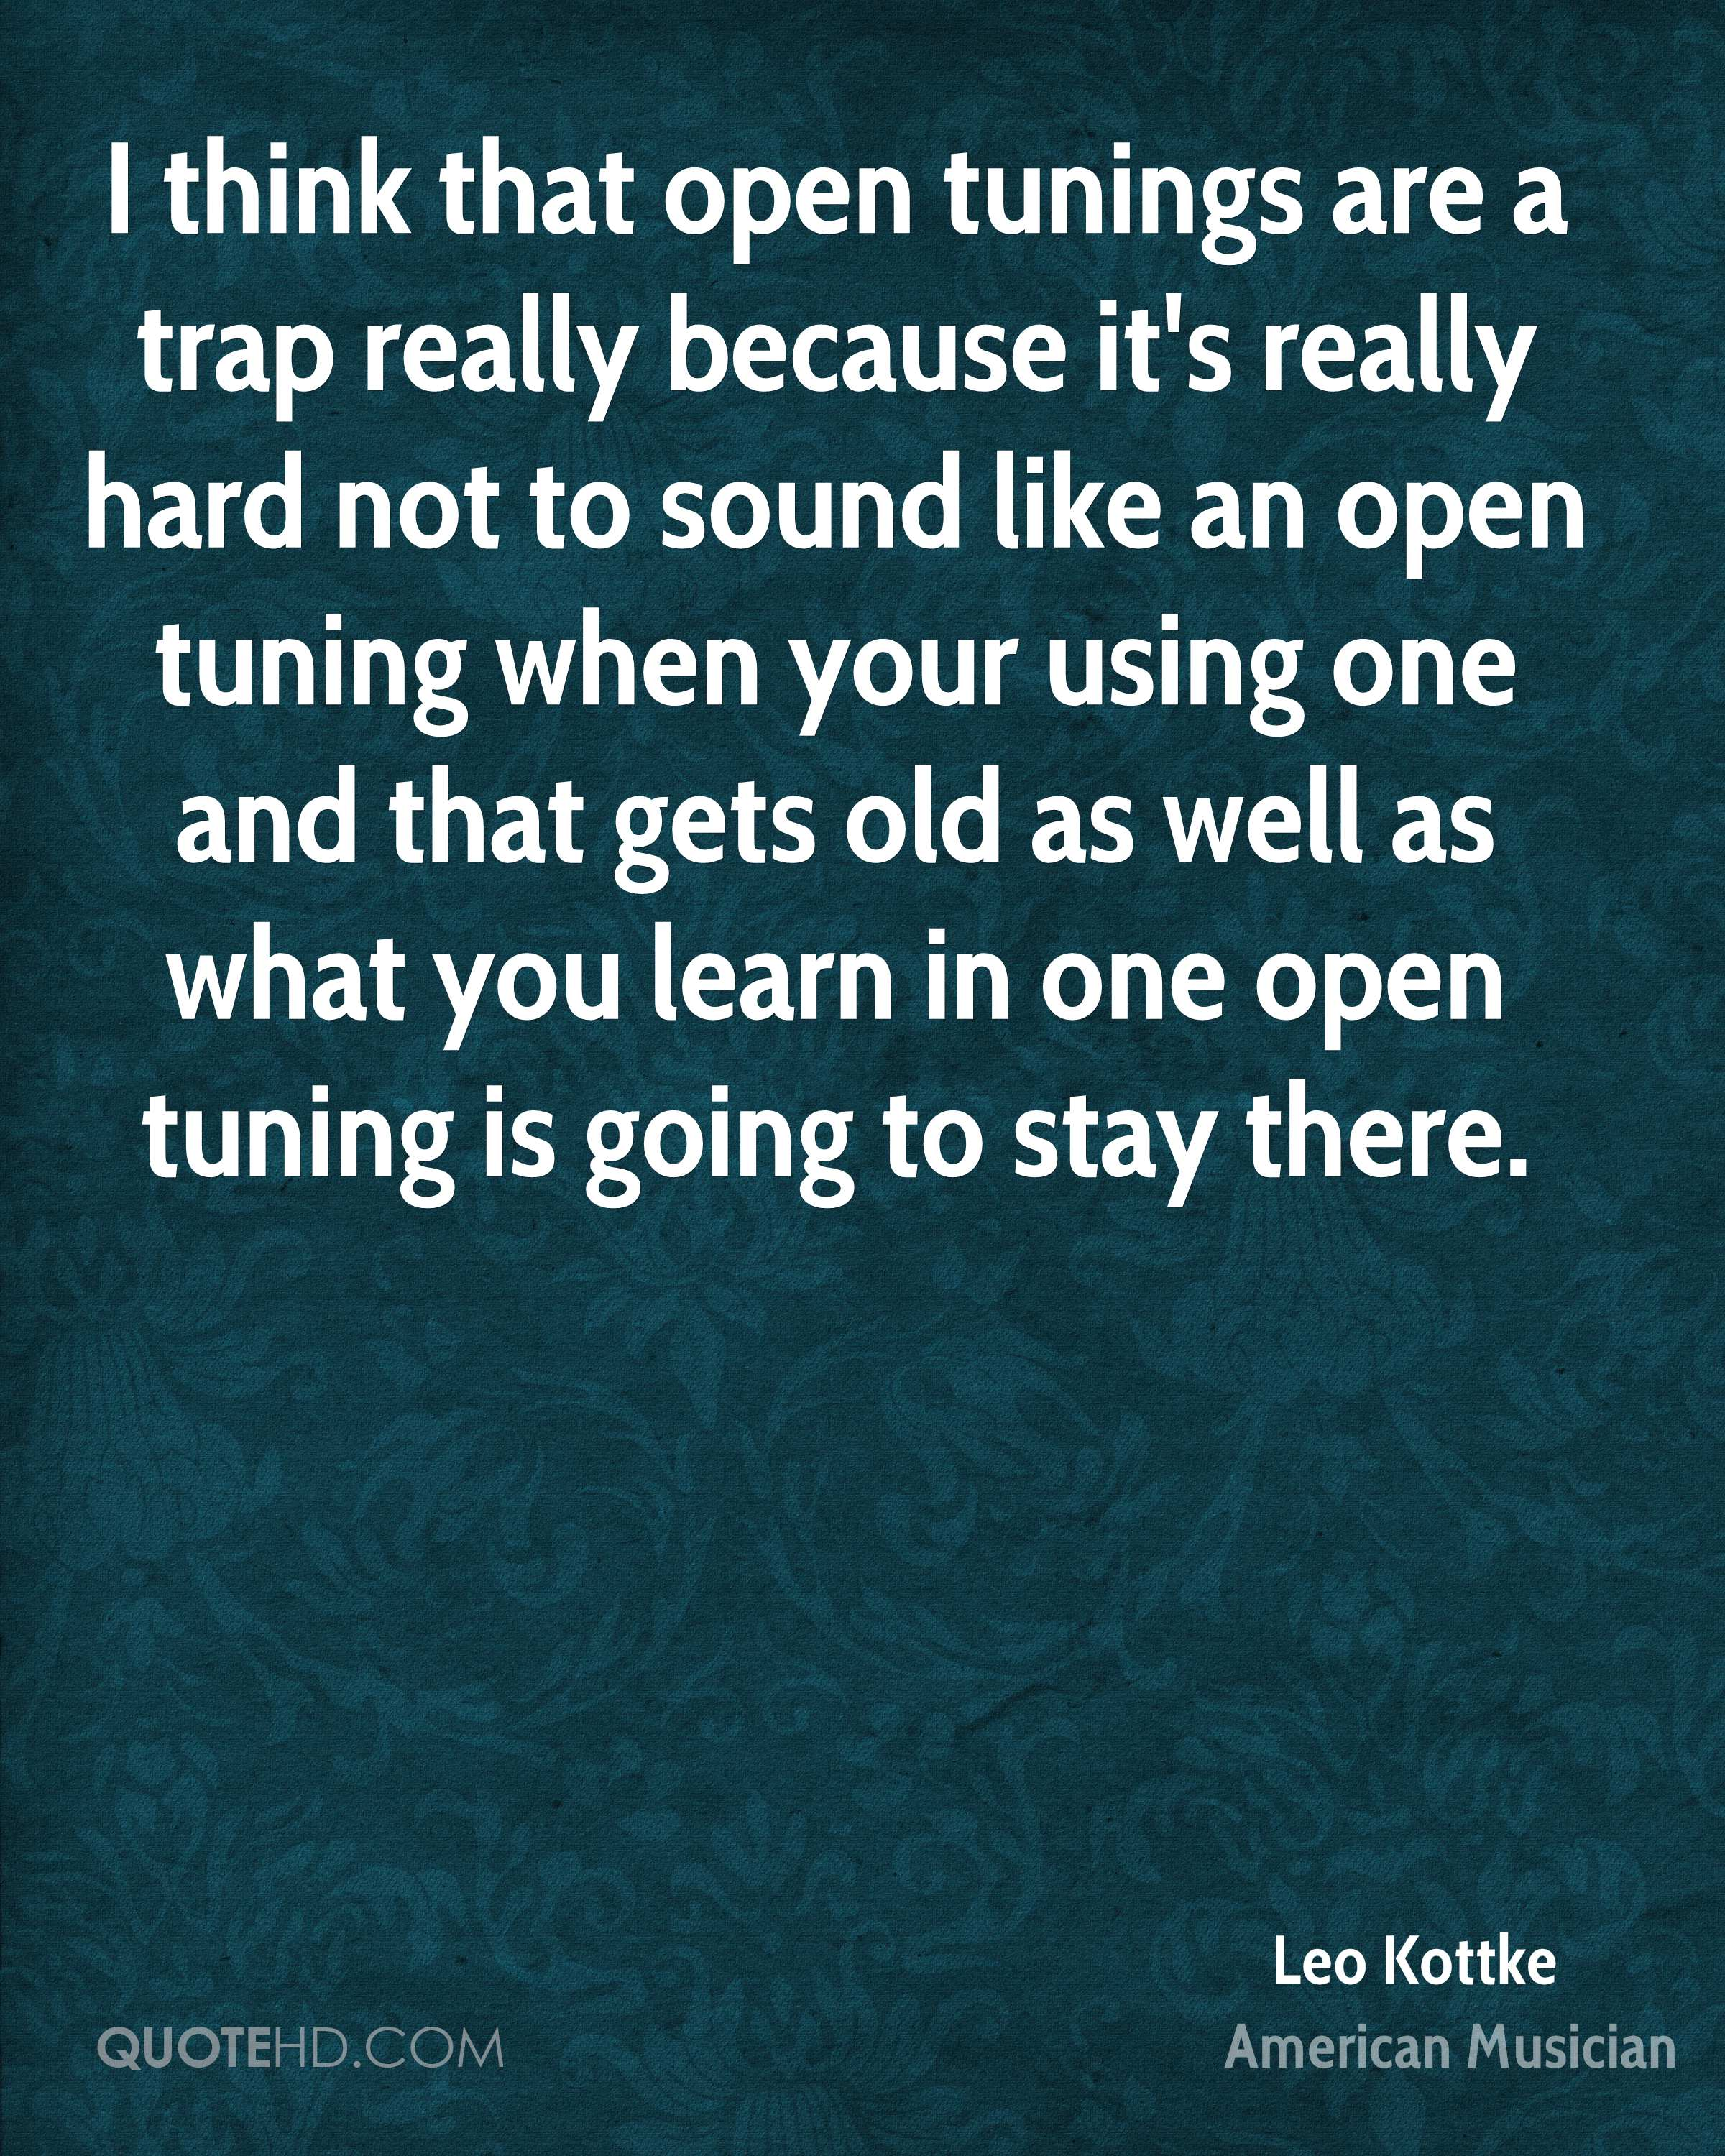 I think that open tunings are a trap really because it's really hard not to sound like an open tuning when your using one and that gets old as well as what you learn in one open tuning is going to stay there.